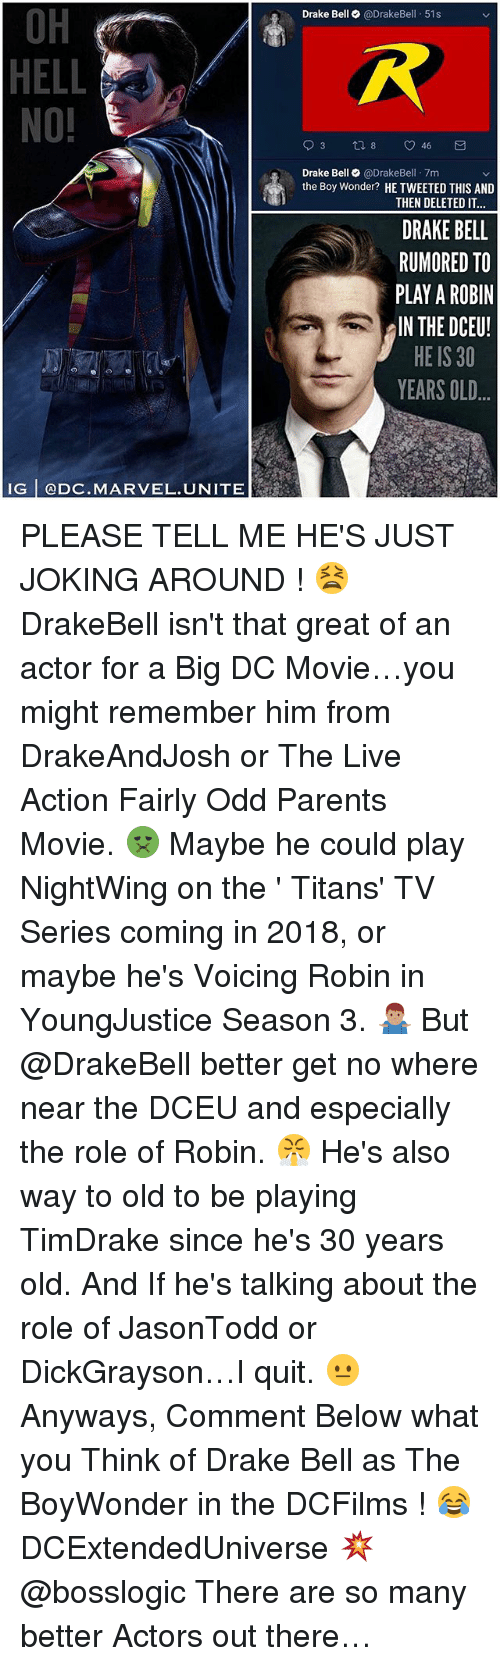 Drake Bell: OH  HELL  NO!  Drake Bell @DrakeBell 51s  Drake Bell@DrakeBel 7m  the Boy Wonder? HE TWEETED THIS AND  THEN DELETED IT  DRAKE BELL  RUMORED TO  PLAY A ROBIN  IN THE DCEU!  HE IS 30  YEARS OLD  IG @DC.MARVEL.UNITE PLEASE TELL ME HE'S JUST JOKING AROUND ! 😫 DrakeBell isn't that great of an actor for a Big DC Movie…you might remember him from DrakeAndJosh or The Live Action Fairly Odd Parents Movie. 🤢 Maybe he could play NightWing on the ' Titans' TV Series coming in 2018, or maybe he's Voicing Robin in YoungJustice Season 3. 🤷🏽‍♂️ But @DrakeBell better get no where near the DCEU and especially the role of Robin. 😤 He's also way to old to be playing TimDrake since he's 30 years old. And If he's talking about the role of JasonTodd or DickGrayson…I quit. 😐 Anyways, Comment Below what you Think of Drake Bell as The BoyWonder in the DCFilms ! 😂 DCExtendedUniverse 💥 @bosslogic There are so many better Actors out there…